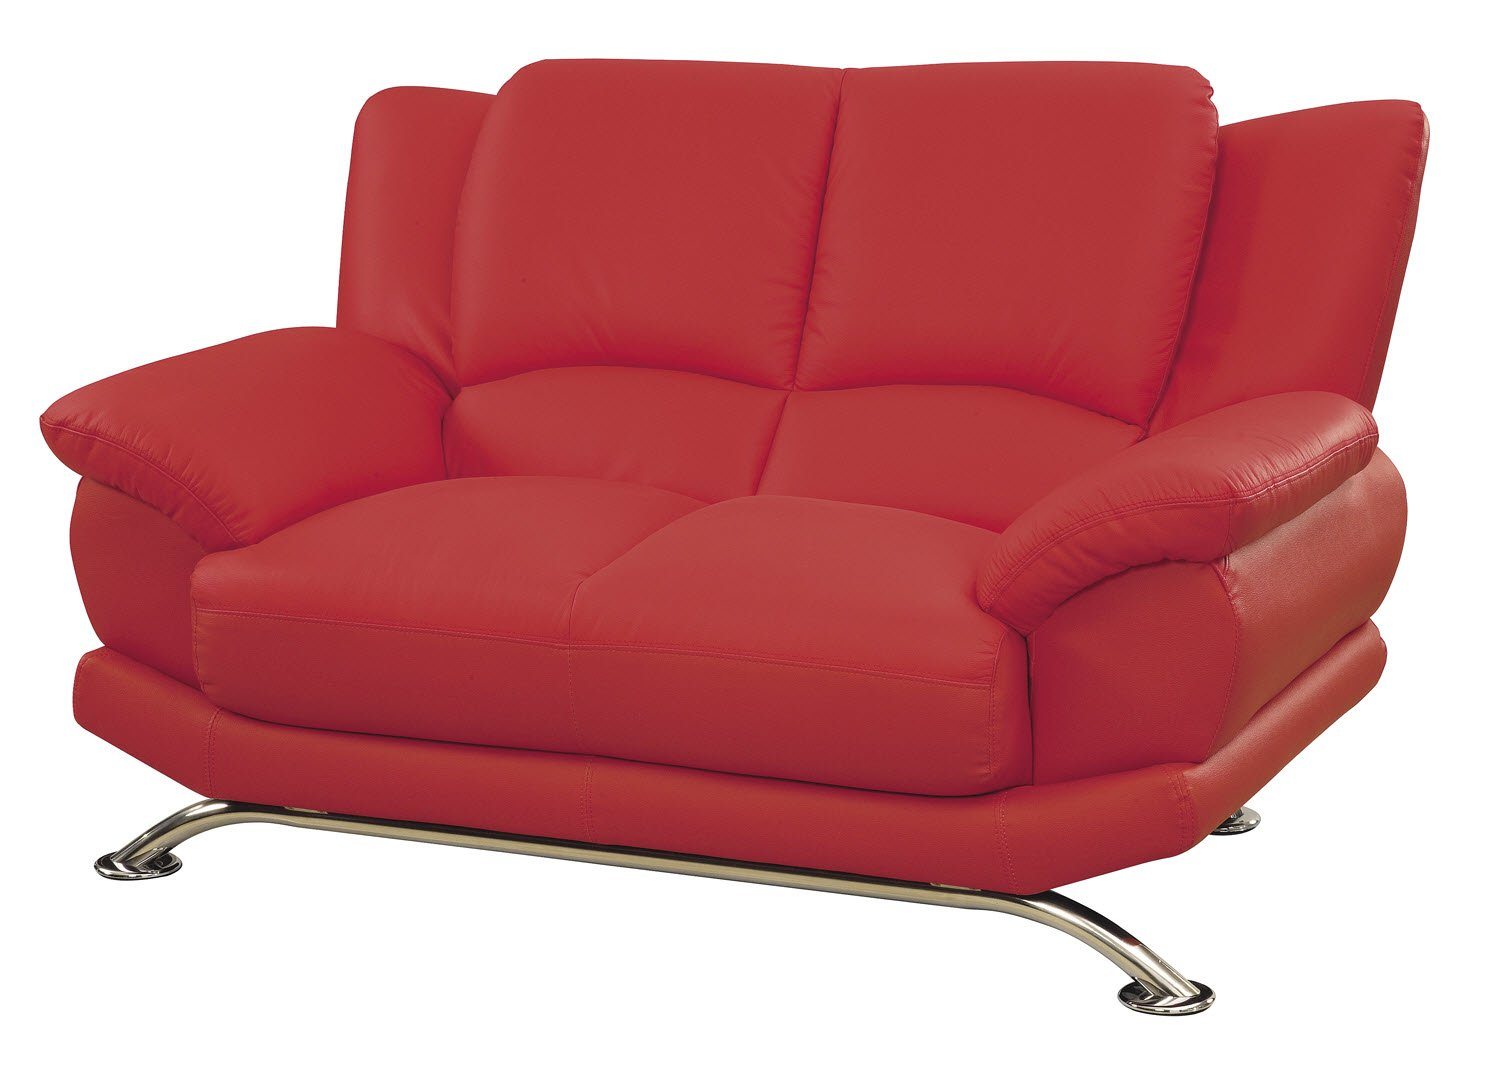 Charming Amazon.com: Global Furniture Rogers Collection Bonded Leather Matching Love  , Red With Chrome Legs: Kitchen U0026 Dining